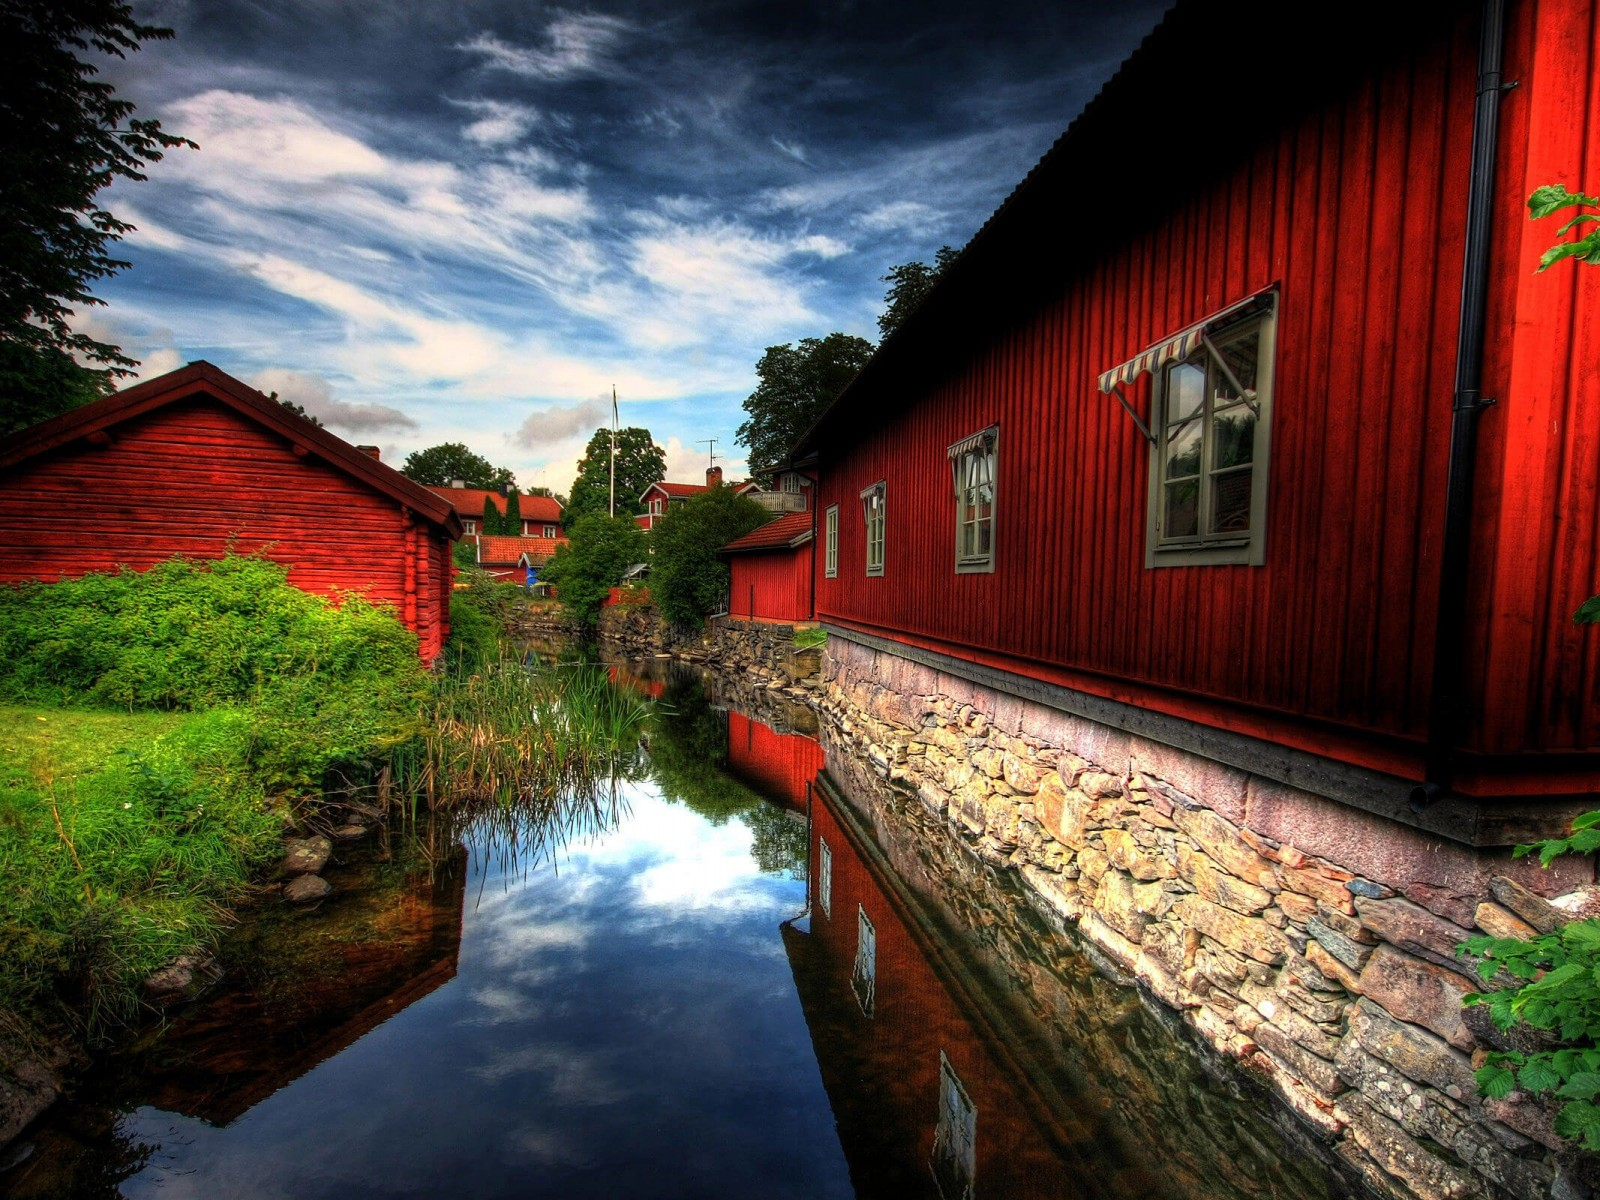 Red Village, Norberg, Sweden Wallpaper for Desktop 1600x1200